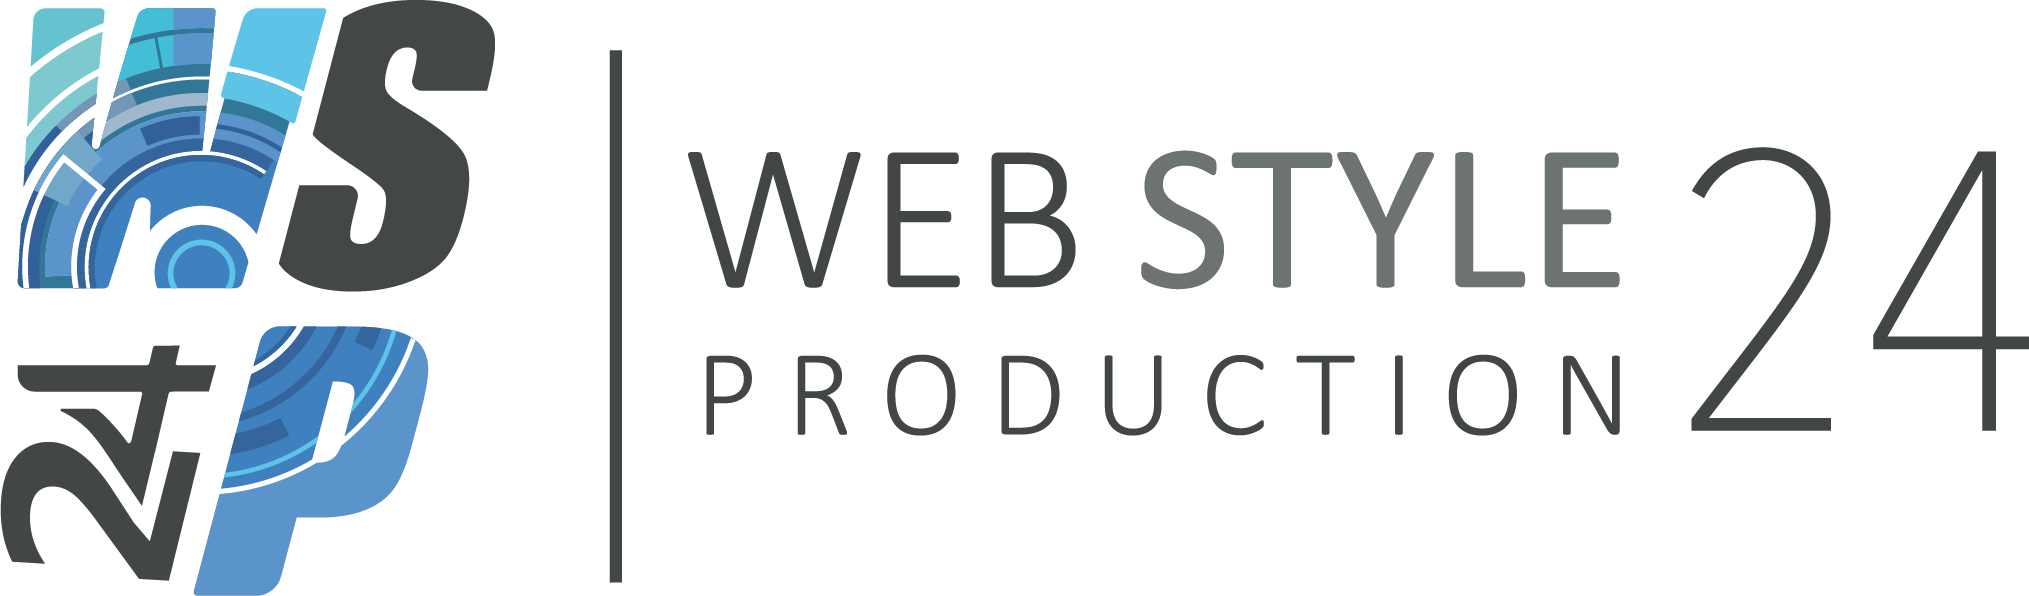 Web Style Production 24